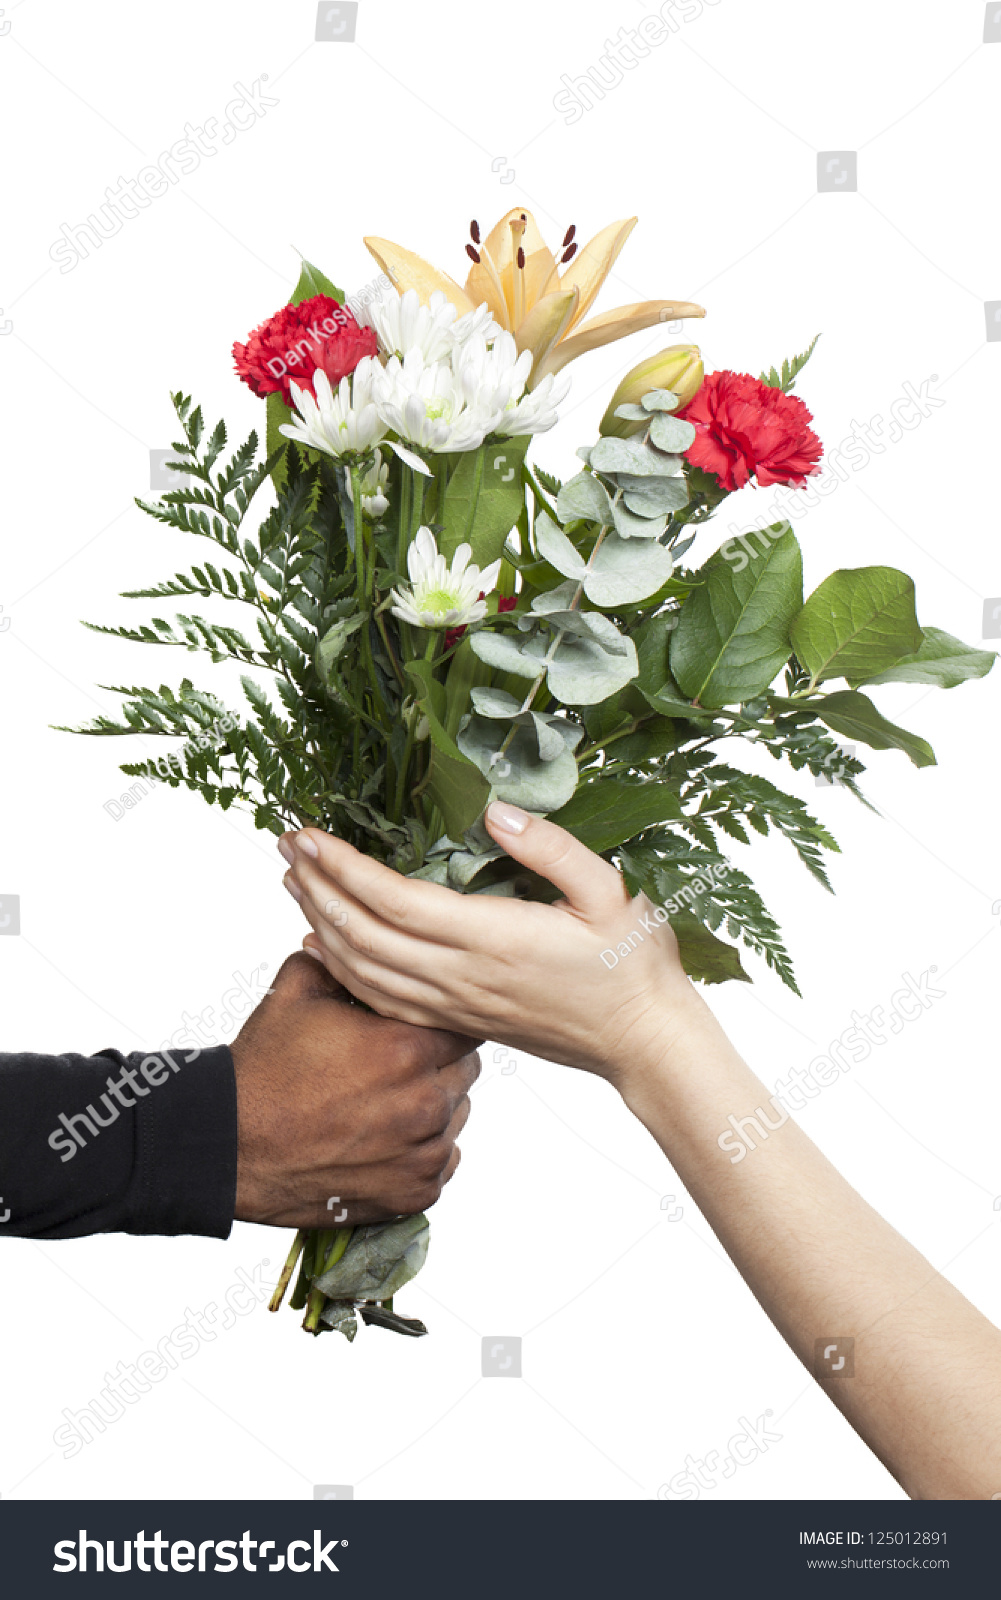 Man Holding Bouquet Flower While Woman Stock Photo (Royalty Free ...